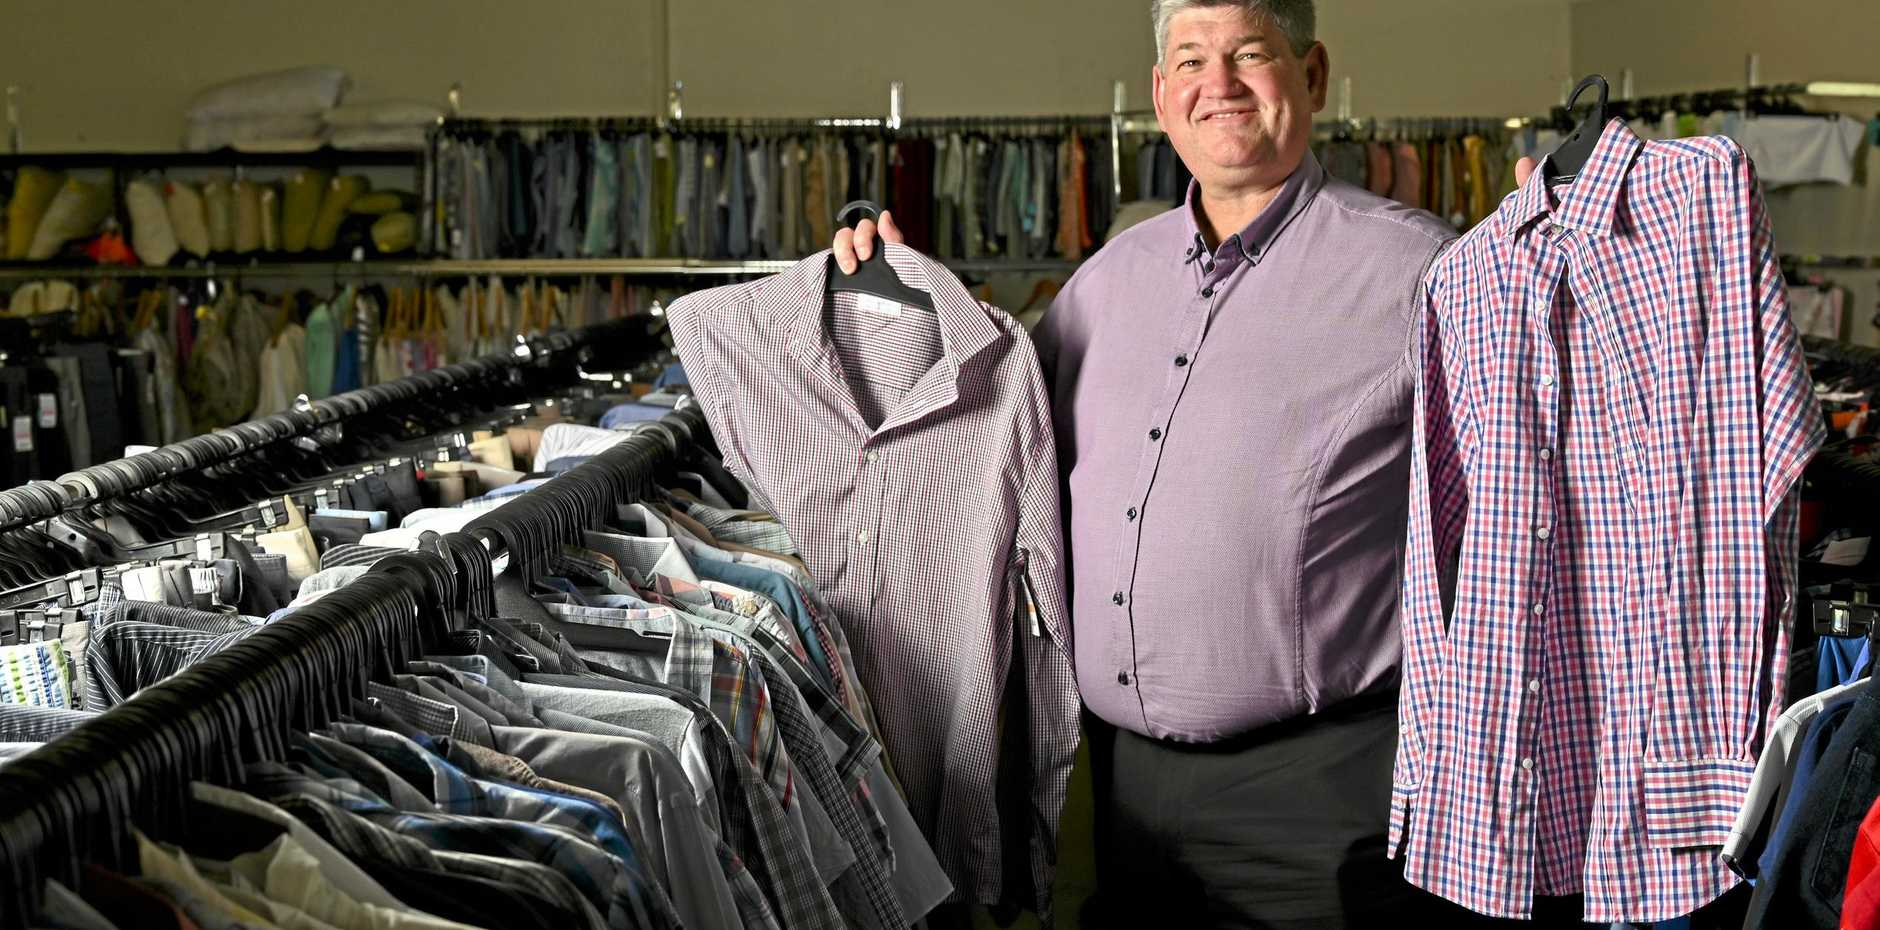 BARGAINS GALORE: Lifeline Regional Development Manager Neil Ramm is hoping for a big crowd at the sale.